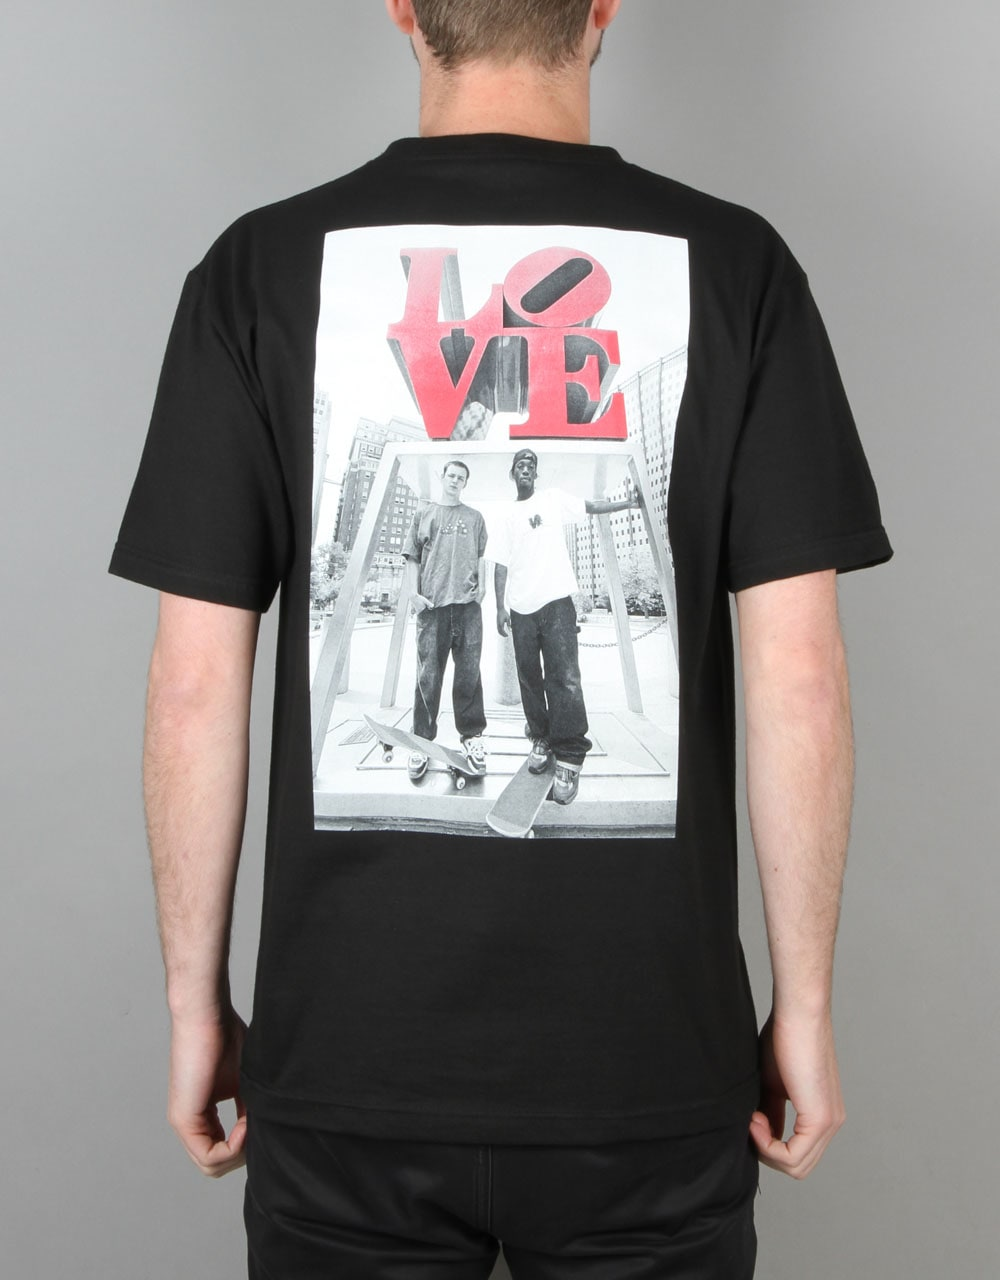 DGK x Mike Blabac Love Park  99 T-Shirt - Black  c06c18b90